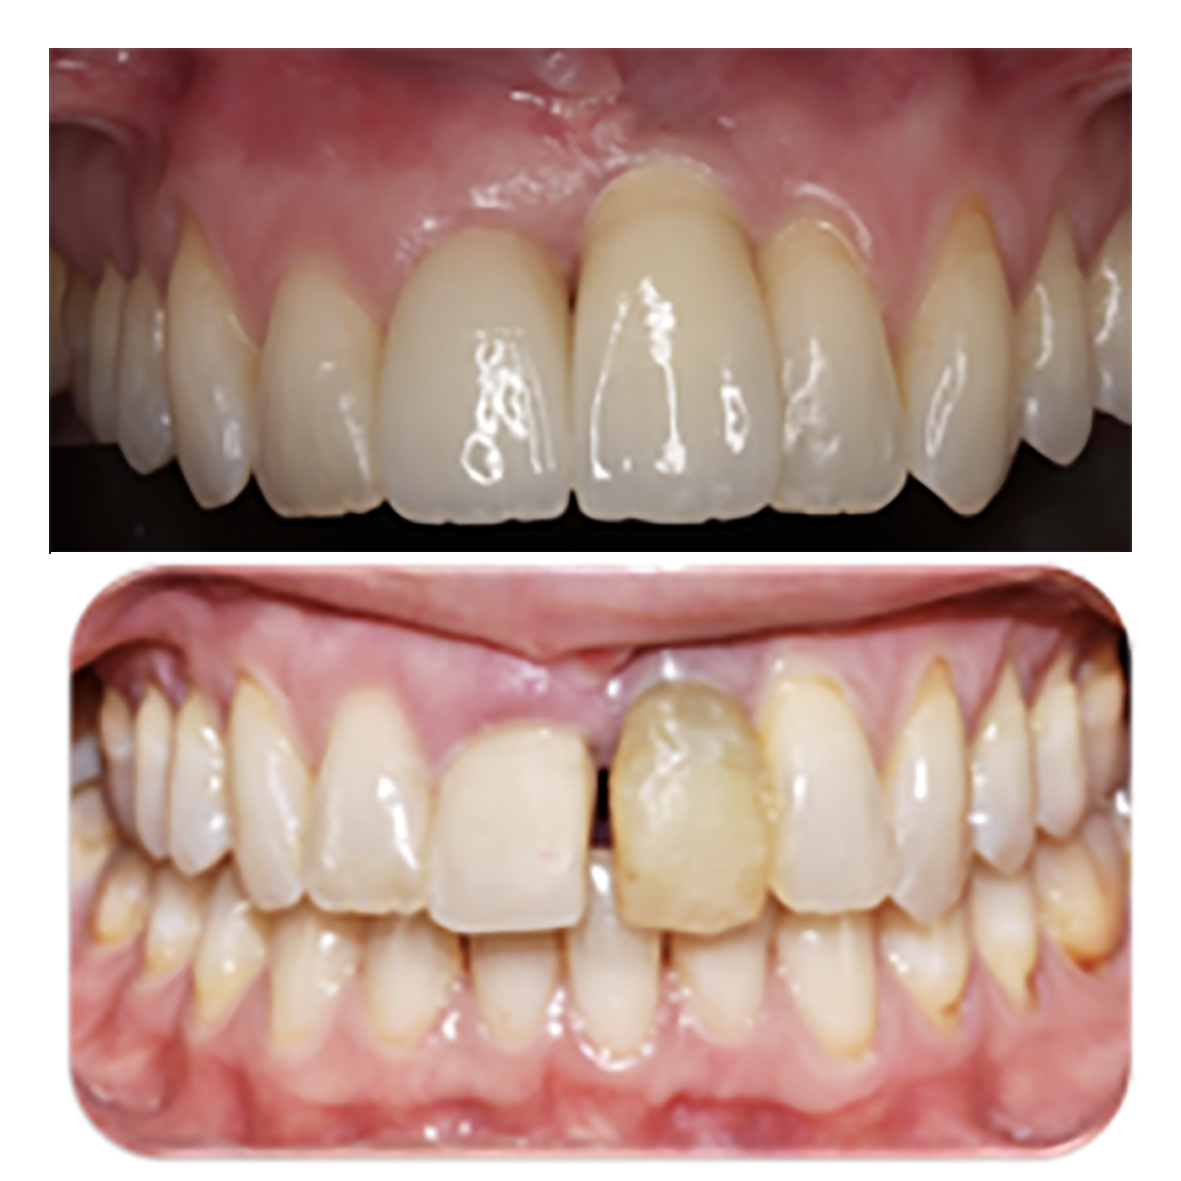 Brace treatment to straighten the teeth, close the gaps and replace with an implant. -